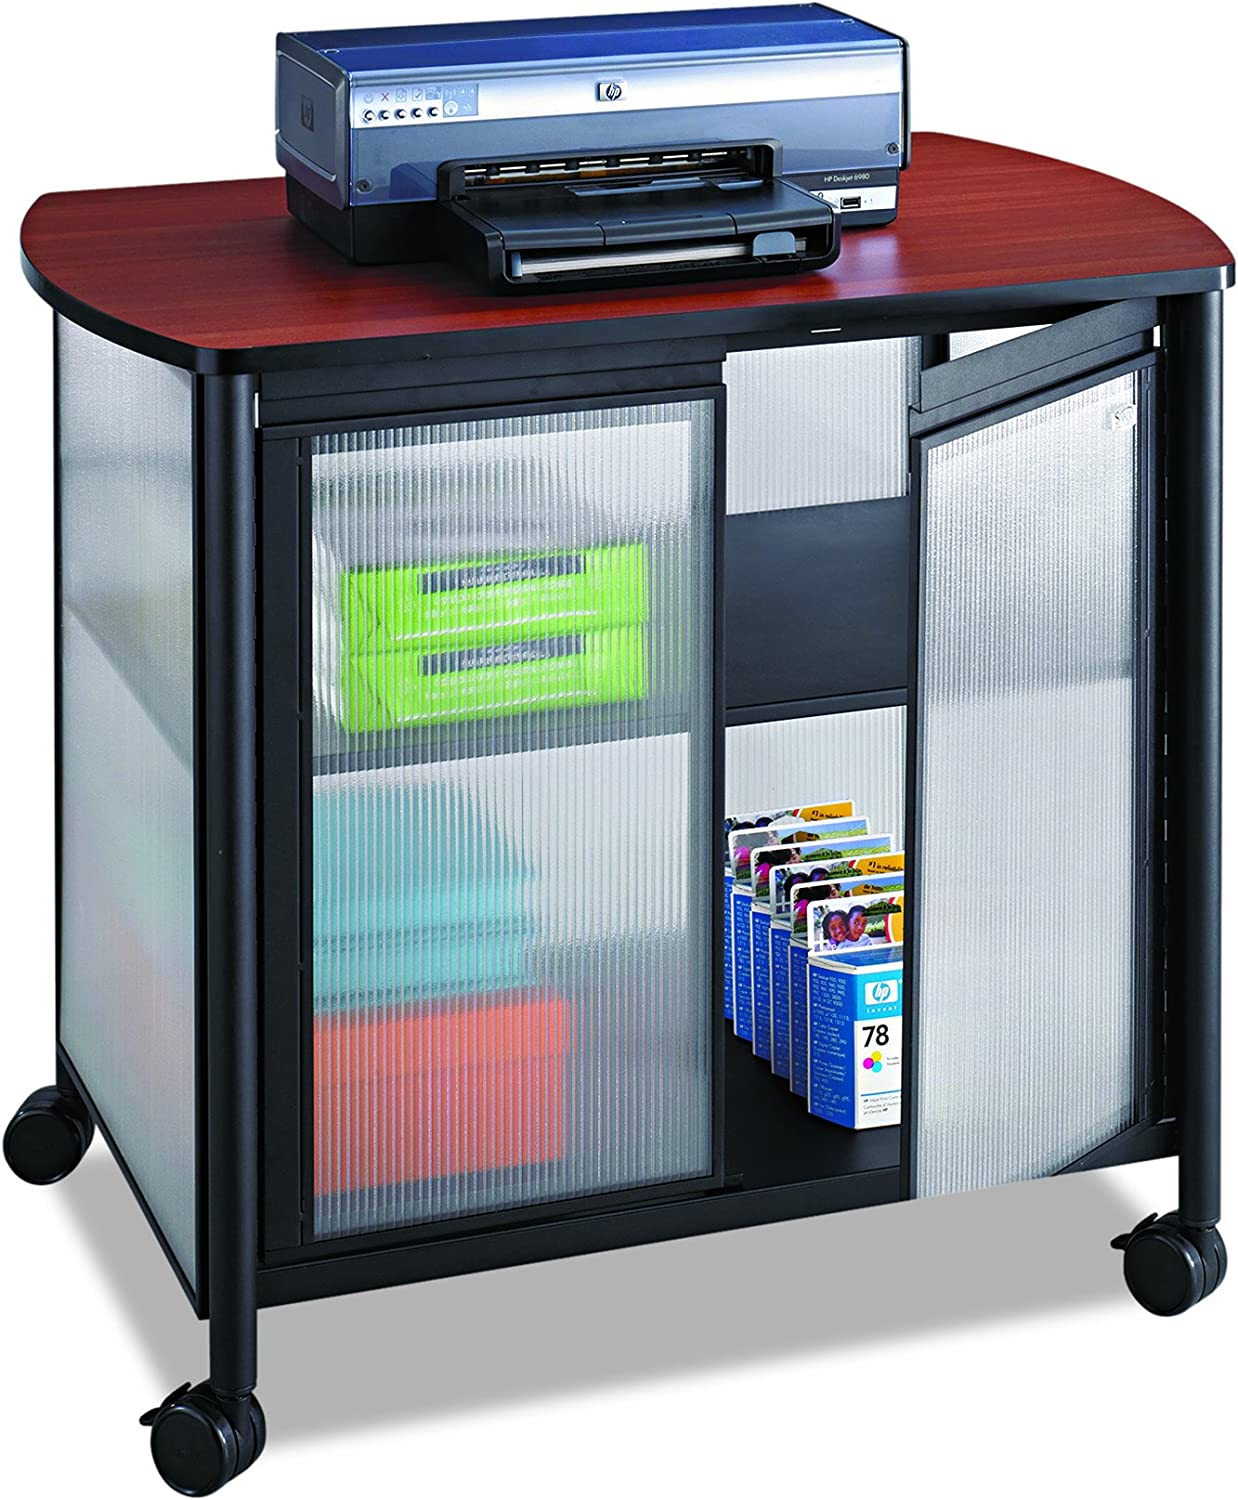 Safco Products Impromptu Mobile Print Stand with Doors 1859BL, Cherry Top/Black Frame , 200 lbs. Capacity, Contemporary Design, Swivel Wheels